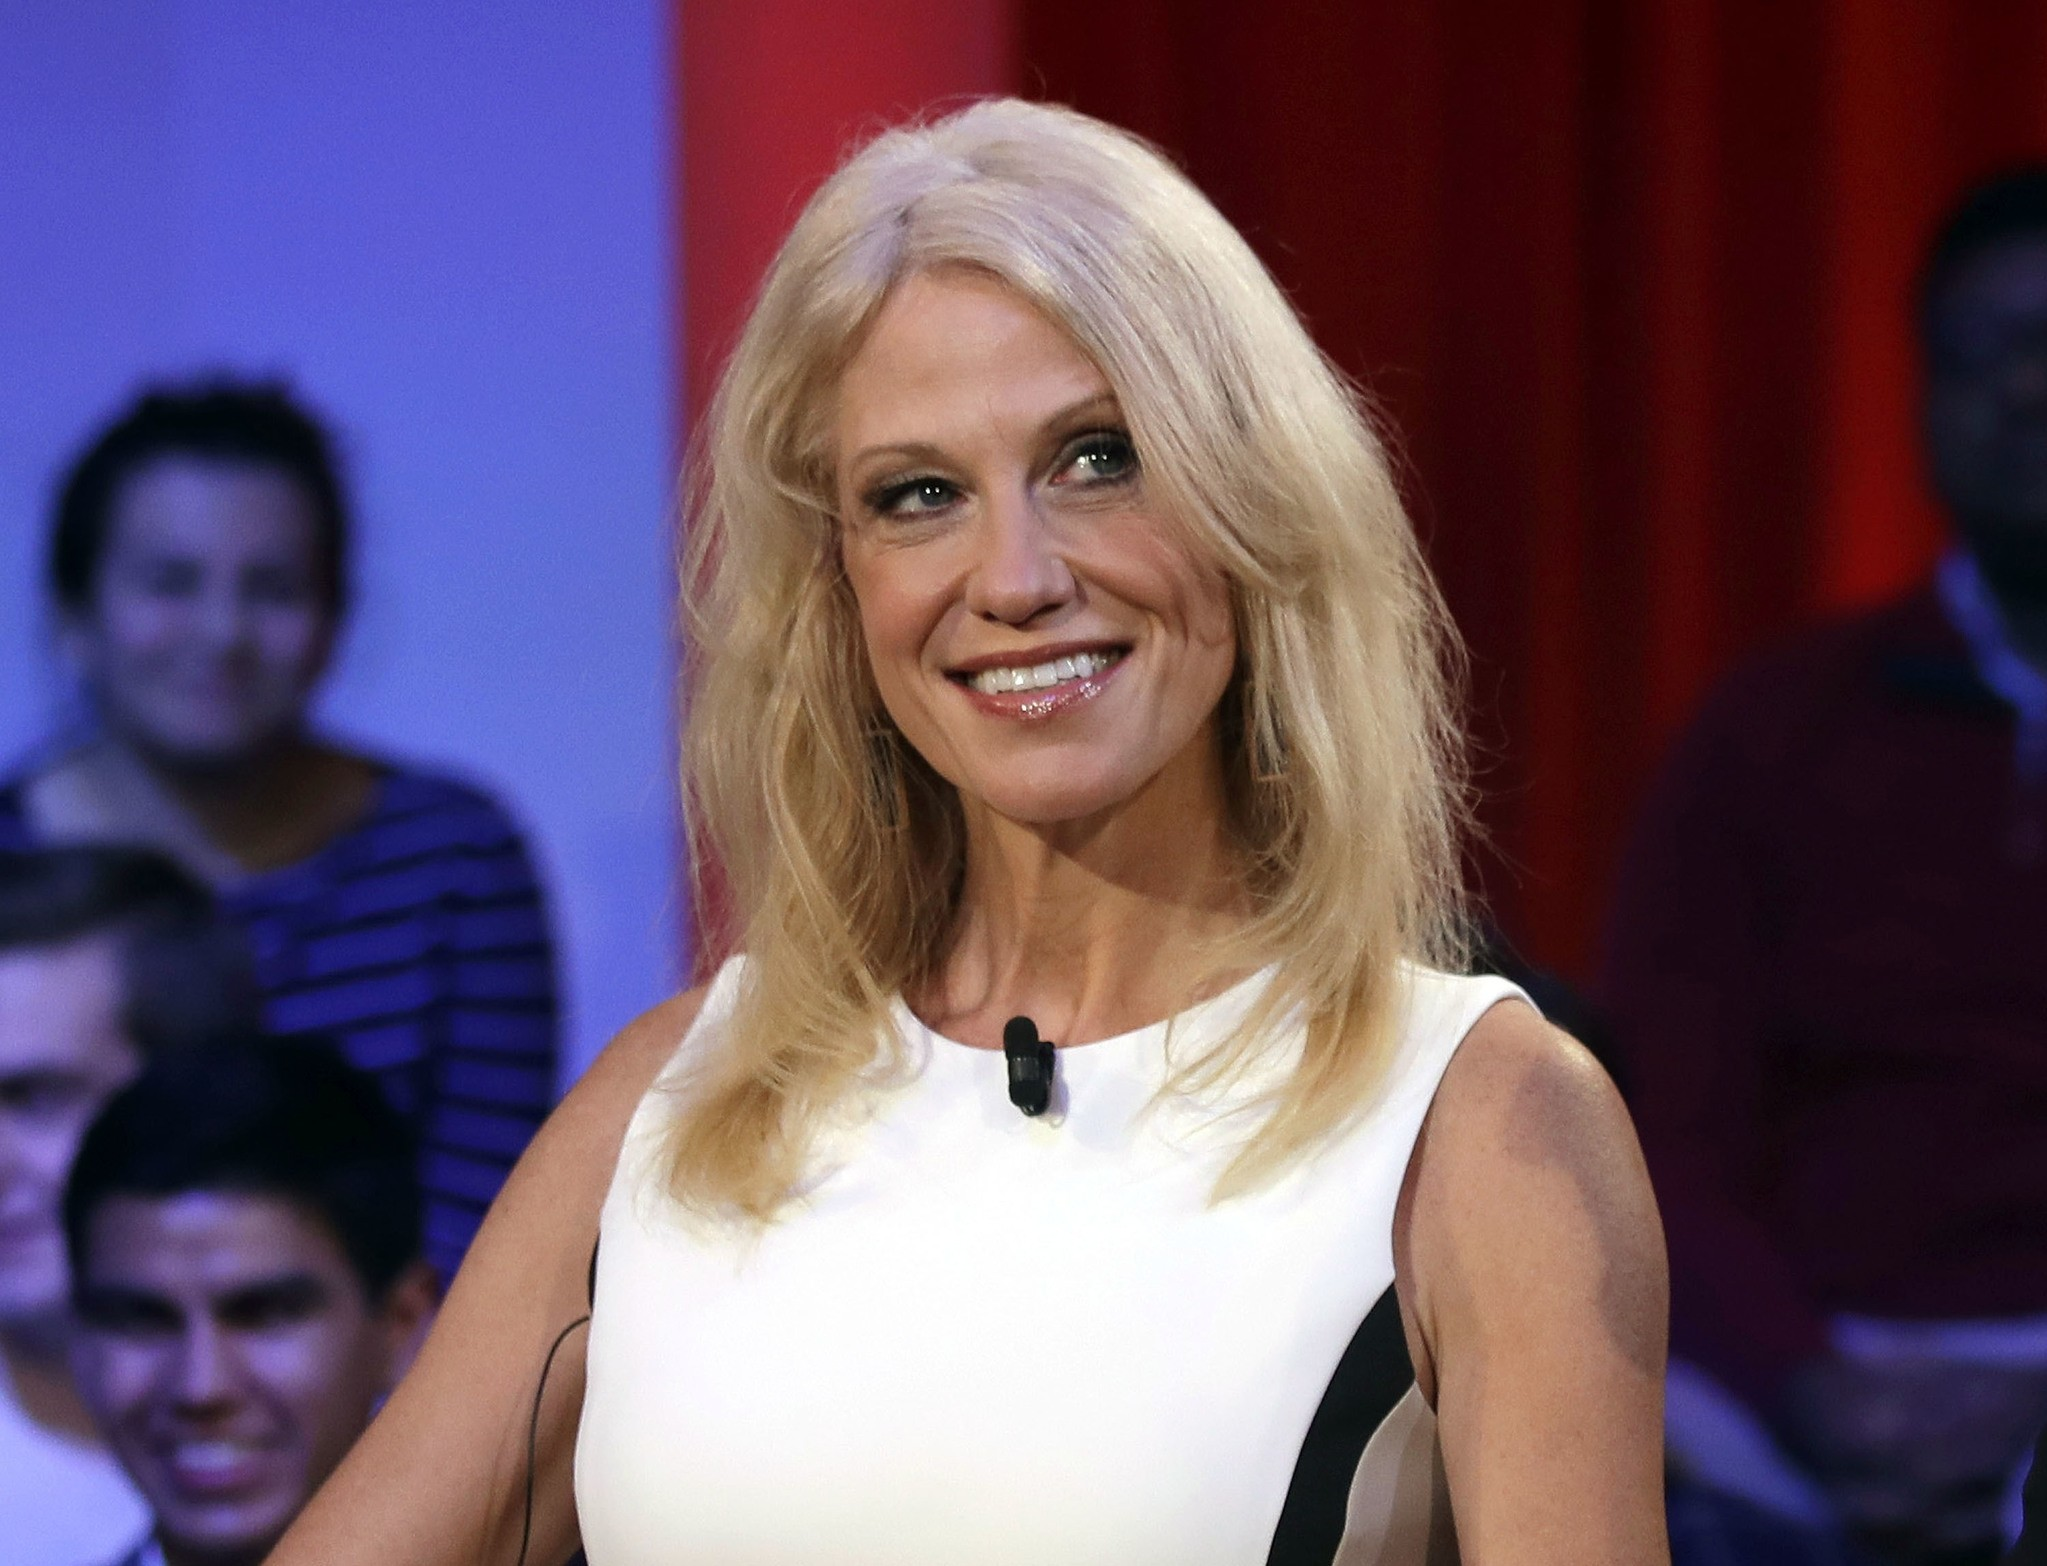 Kellyanne Conway prior to a forum at Harvard University's Kennedy School of Government in Cambridge. (AP Photo)